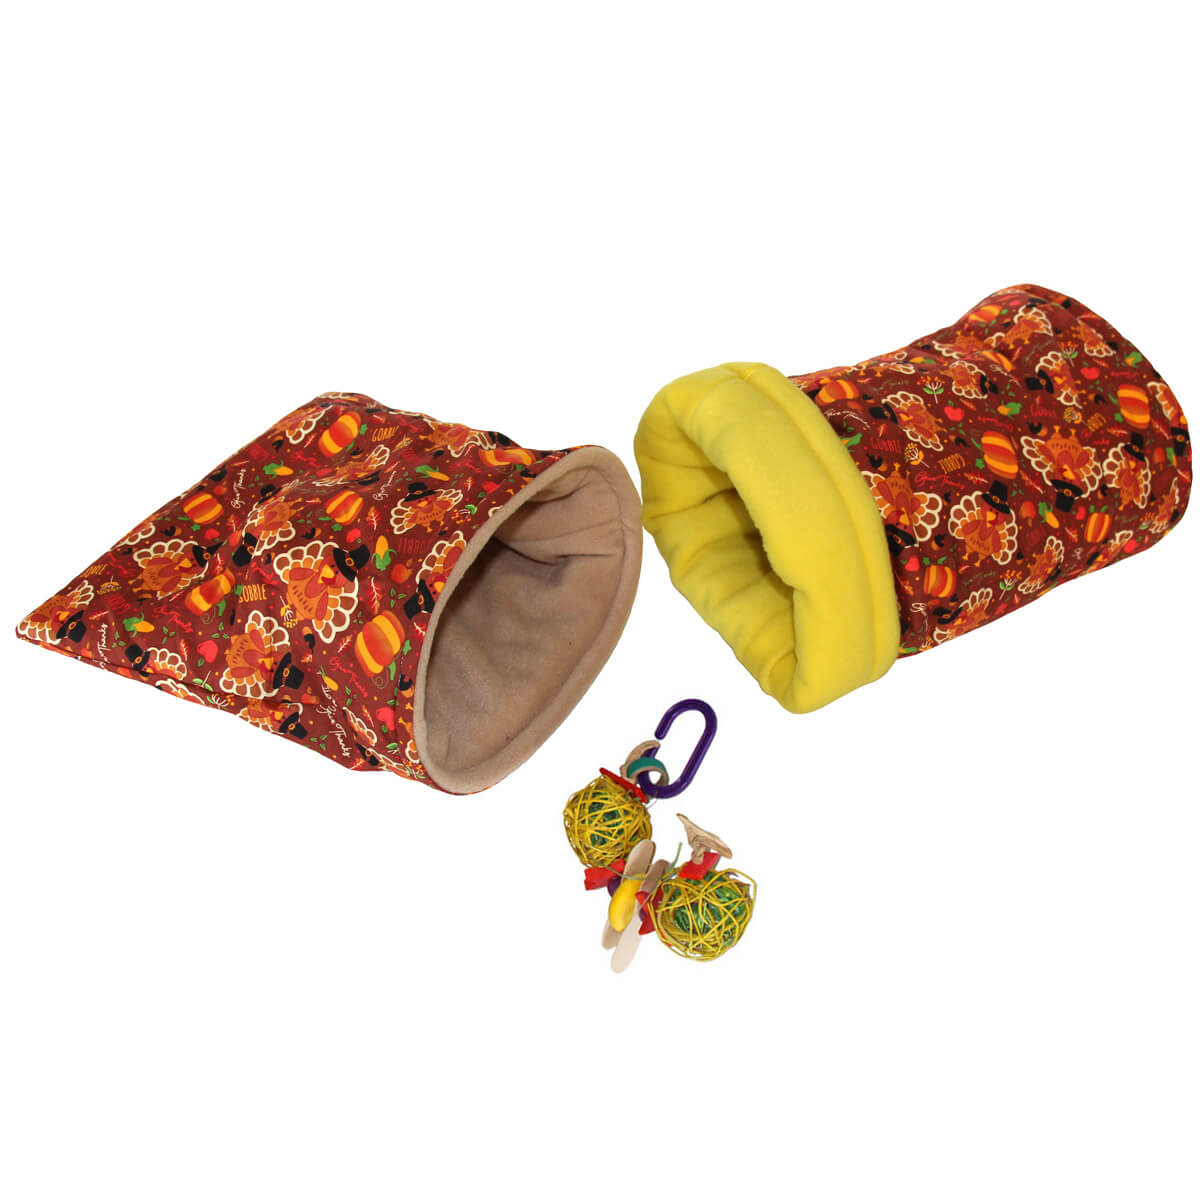 Small Turkeys Bed and Toy Bundle for Guinea Pigs and Other Small Animals